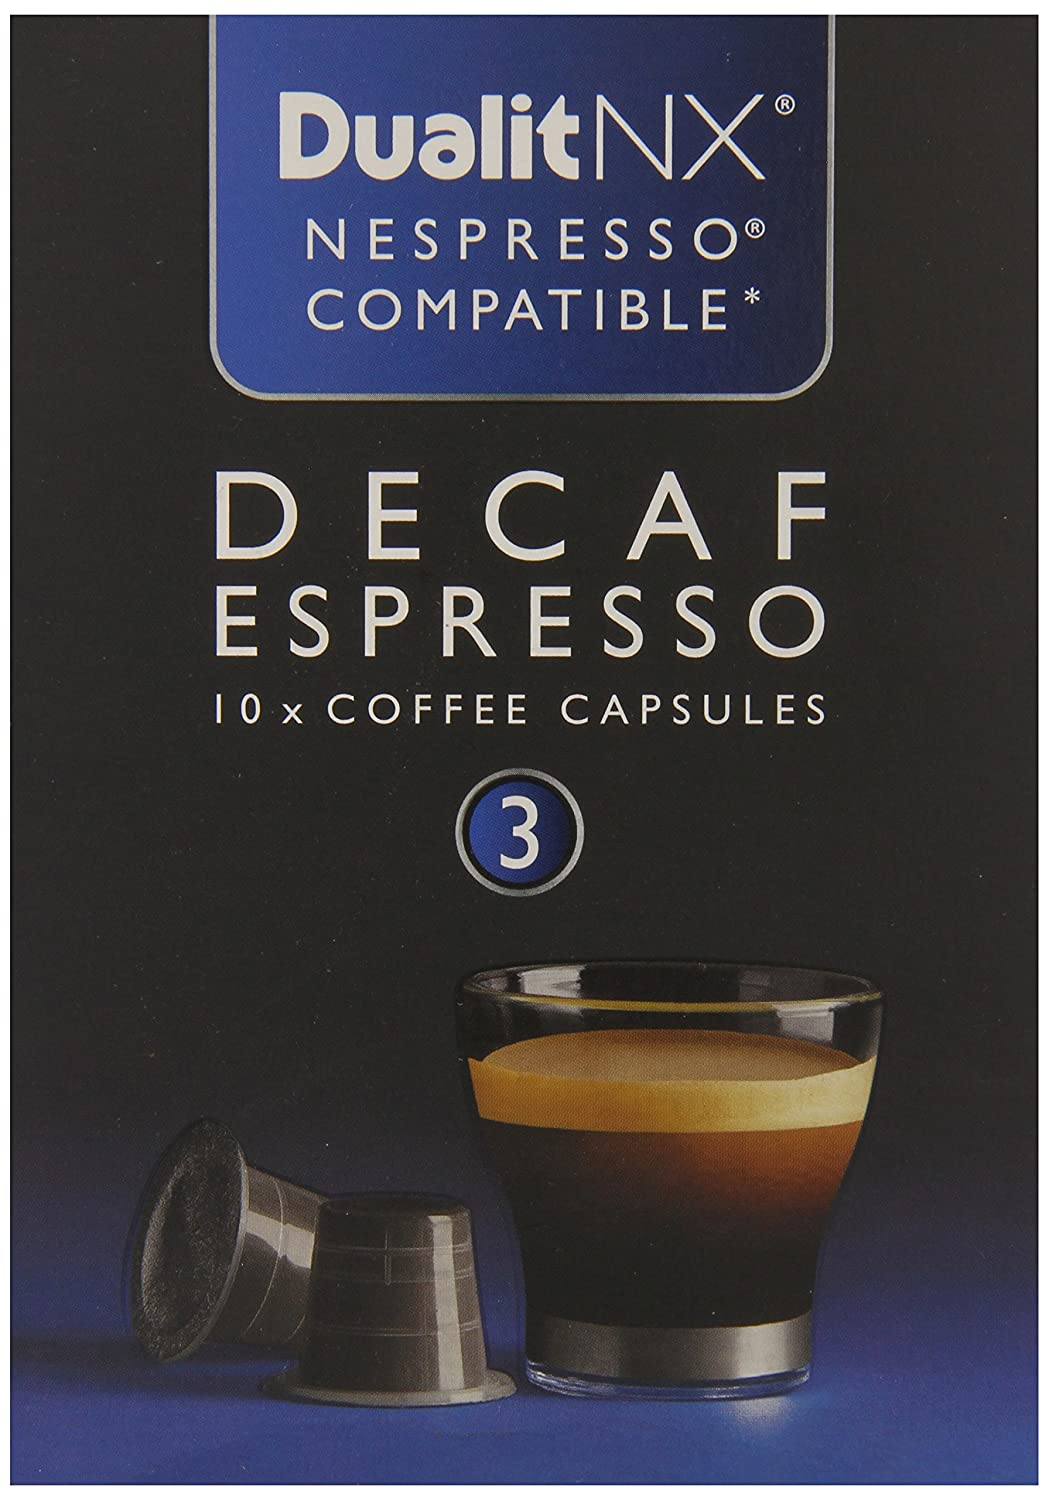 Dualit Nx Decaf Espresso, 0.28 Pound, 10 Coffee Capsules: Amazon.com: Grocery & Gourmet Food